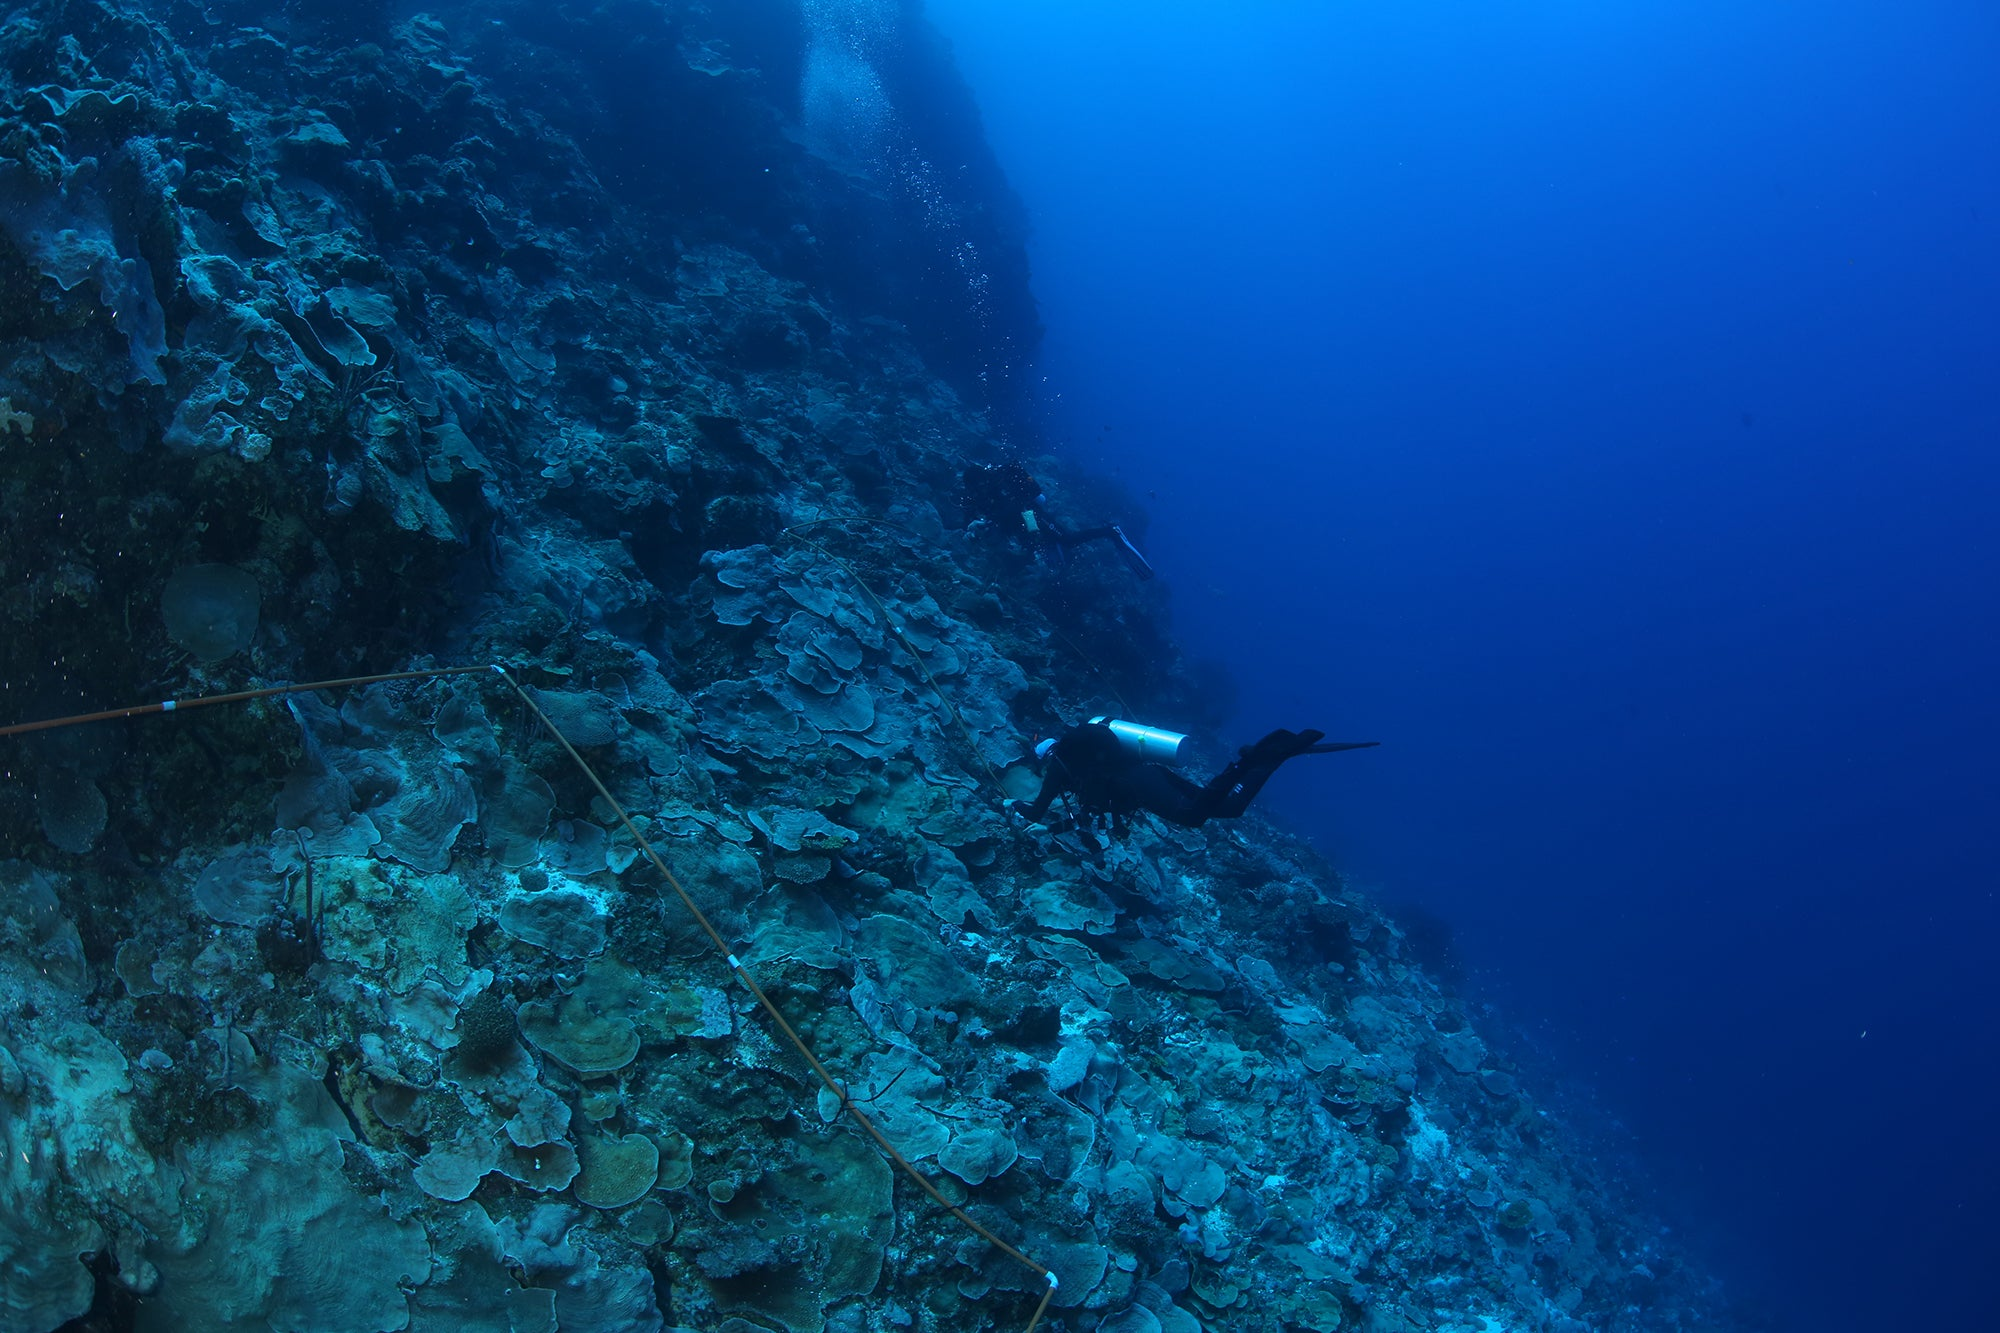 Two divers collect coral samples from reef.